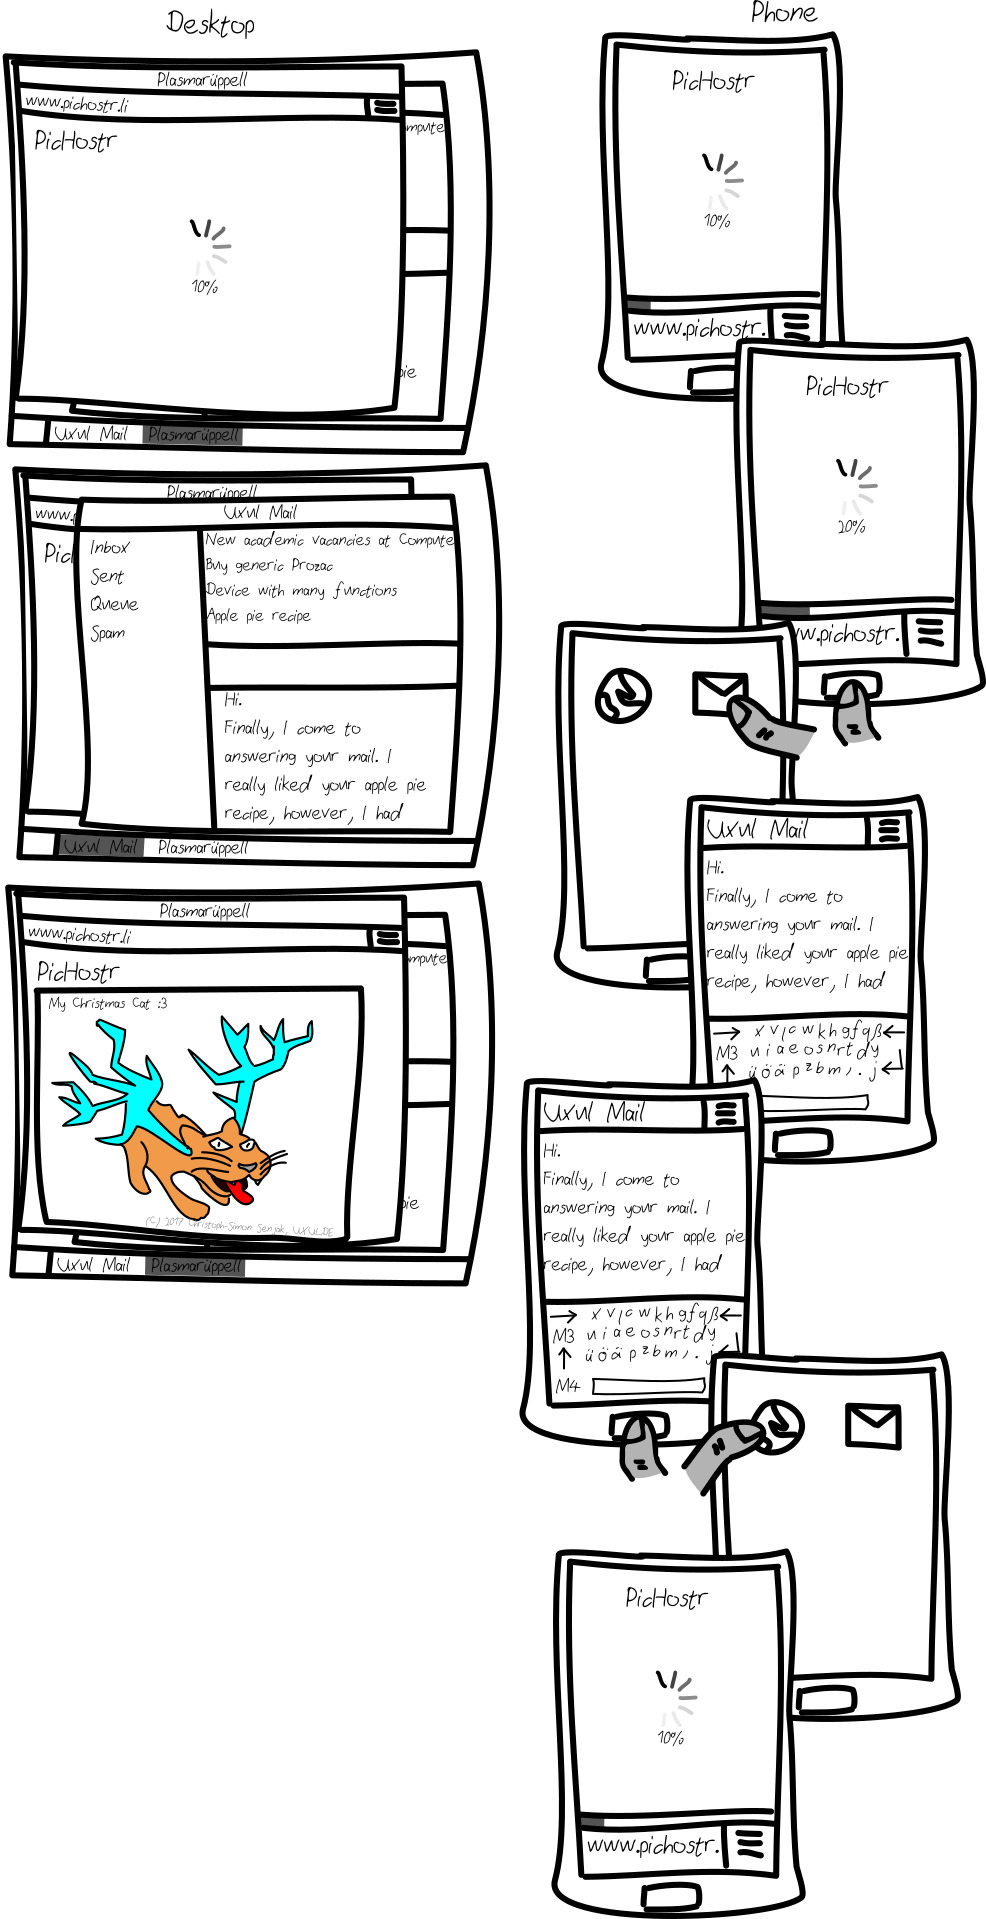 "The comic consists of two columns, the left column has the title ""Desktop"", the right column has the title ""Phone"". The left column shows a usual desktop with a taskbar. Two programs ""Uxul Mail"" and ""Plasmarüppel"" are opened, the latter one is in the foreground and loads a web page named ""PicHostr"" at 10%. The user switches to ""Uxul Mail"" which then comes to the foreground. It is a mail program, showing an inbox with some spammails, as well as a mail that the user currently writes, with the content ""Hi. Finally, I come to answering your mail. I really liked your apple pie recipe, however, I had…"". Then, the user switches back to the browser Plasmarüppel, and it shows the page PicHostr with a photo of a cat wearing a deer antler, titled ""My Christmas Cat :3"" The right column shows a smartphone with a browser which currently loads the page PicHostr at 10%, 20% in the second panel, where the user presses the Home button. In the third panel, the home screen is shown, and the user switches to an app called Uxul Mail, and writes a mail with the same content as the mail from the left column. He then presses the Home button again and turns back to the browser, which again loads PicHostr, but is back at 10%."